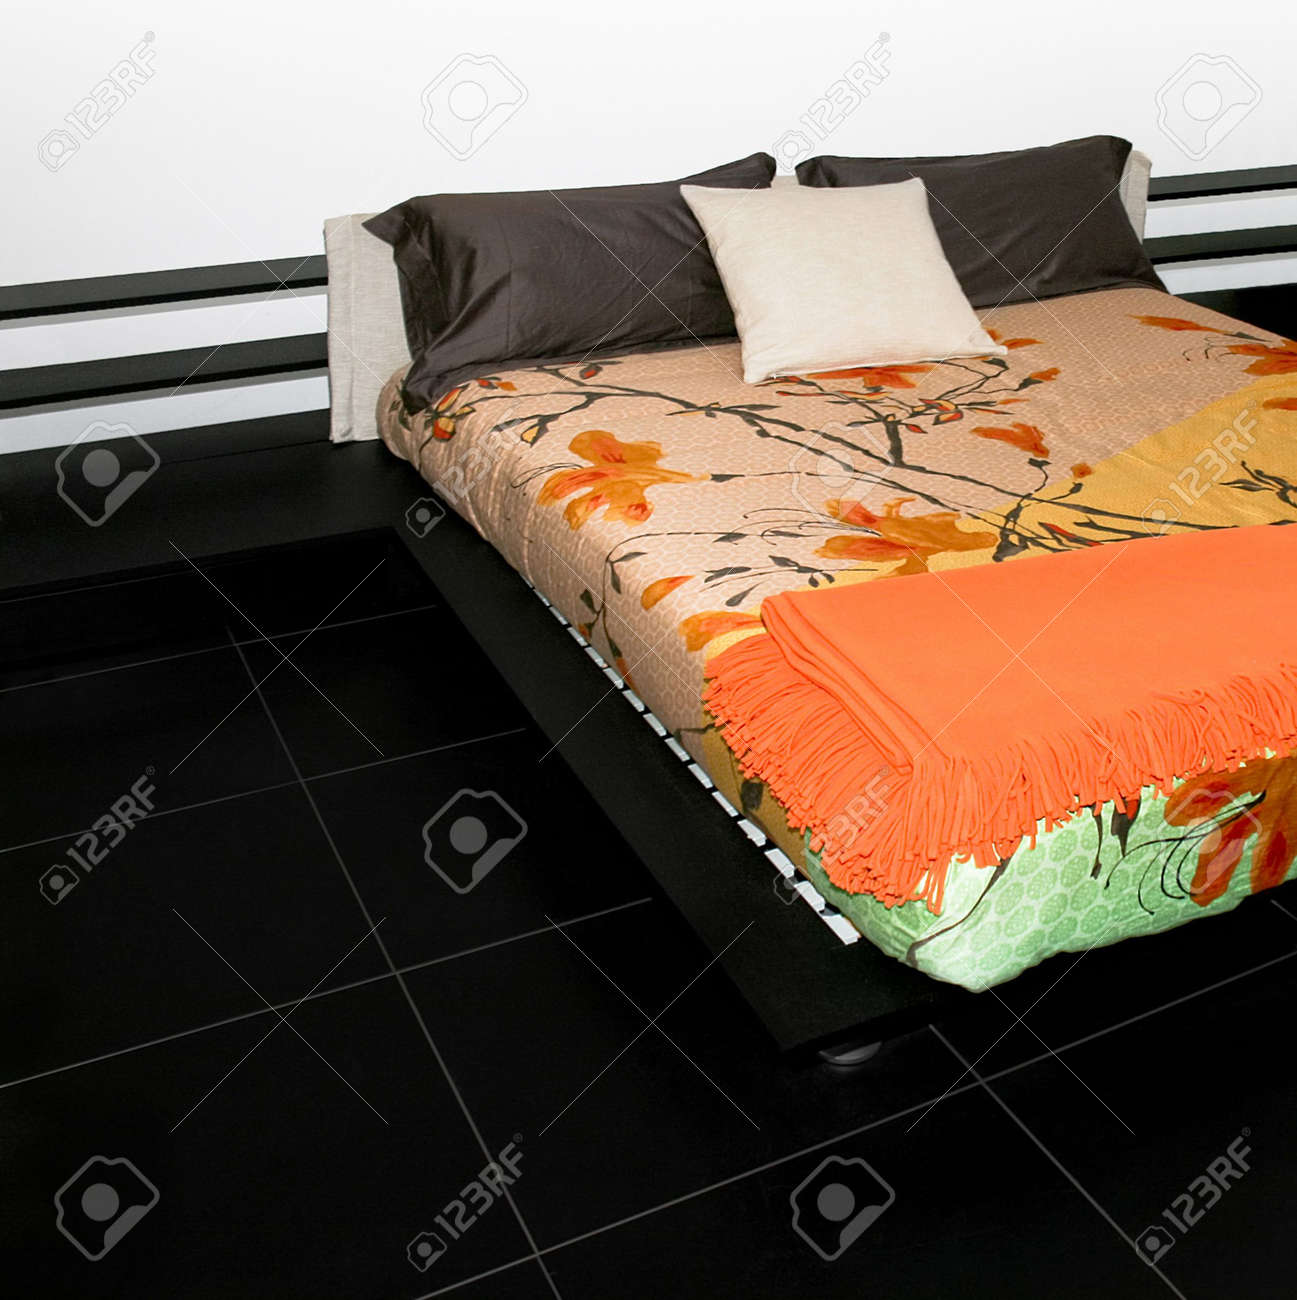 Bedroom with big double bed and colorful sheets Stock Photo - 2096239